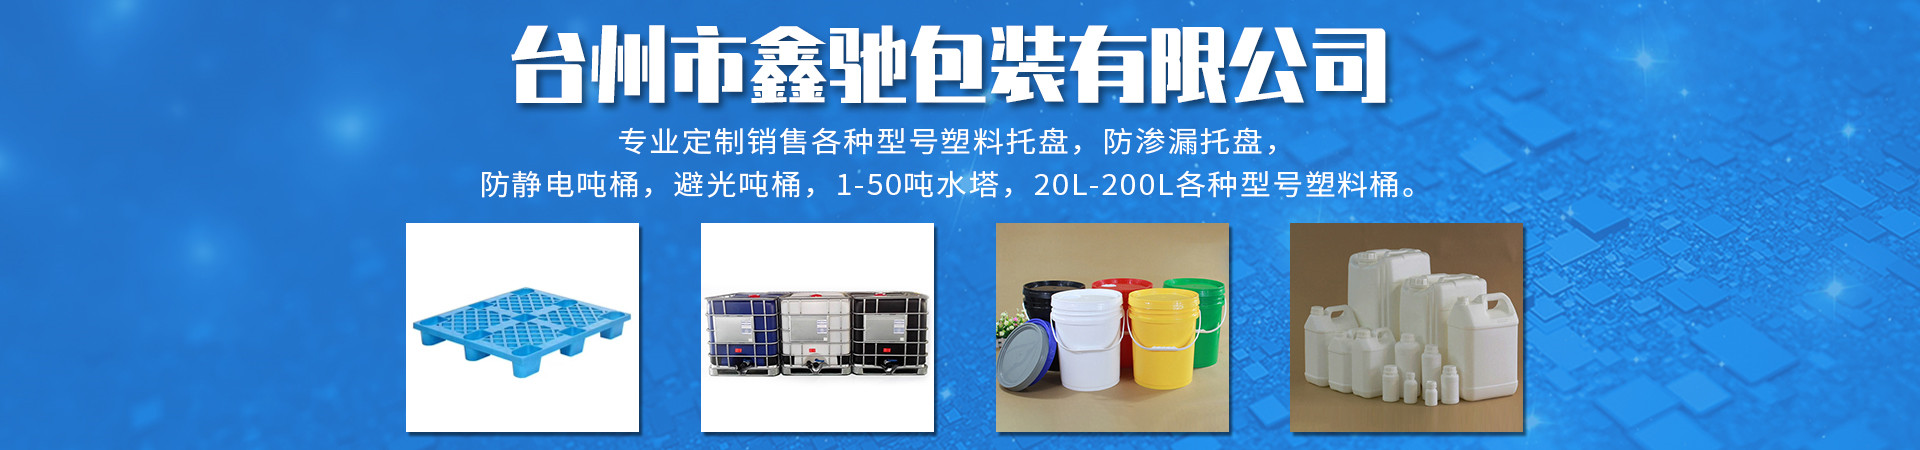 http://www.tzxinchi.com/data/upload/202011/20201126100340_292.jpg